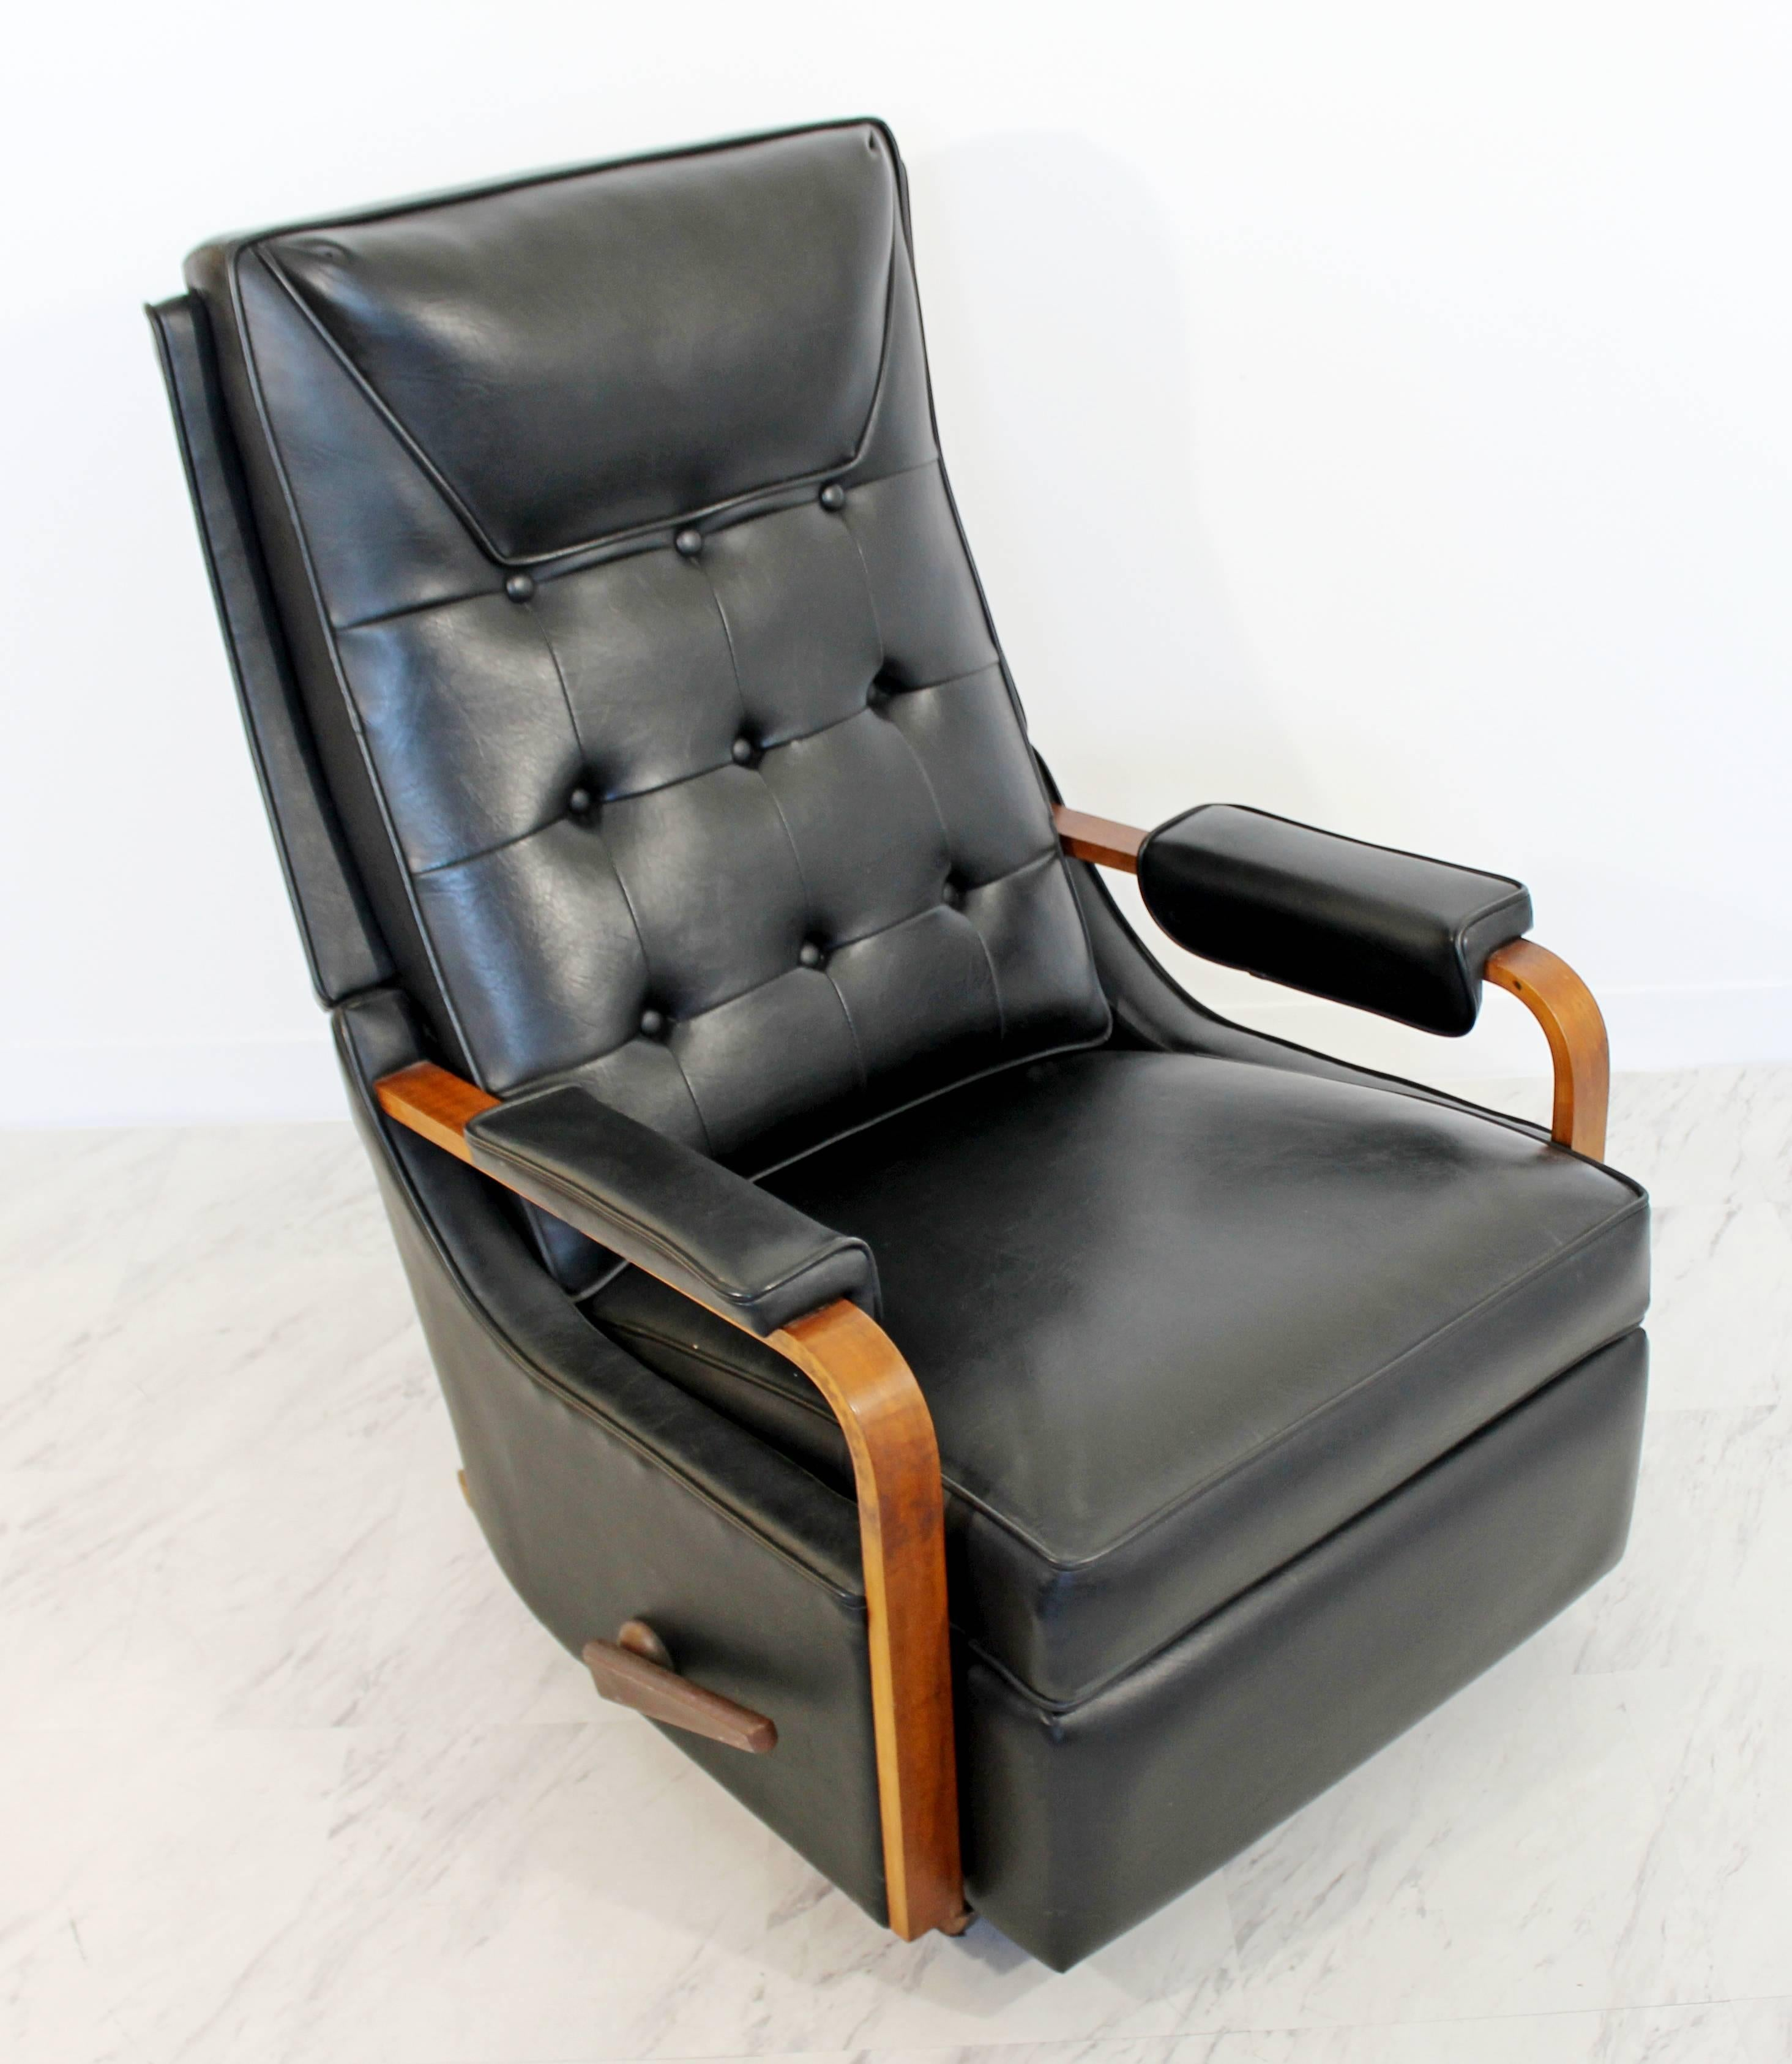 For Your Consideration Is An Original, Classic La Z Boy Reclining Rocking  Chair